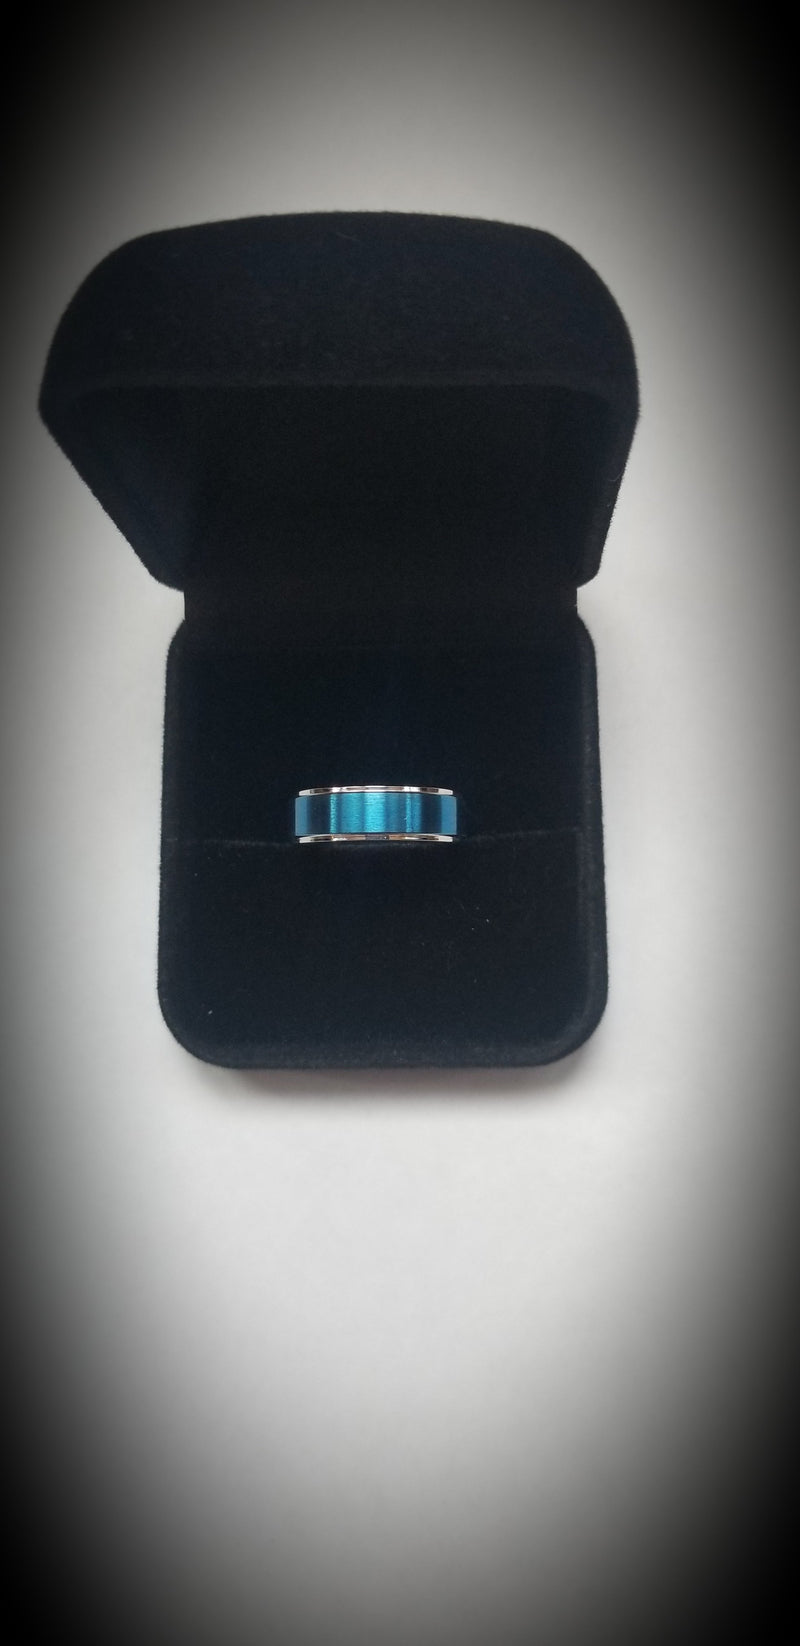 products/stainless-steel-thin-blue-line-ring-jewelry-358073.jpg